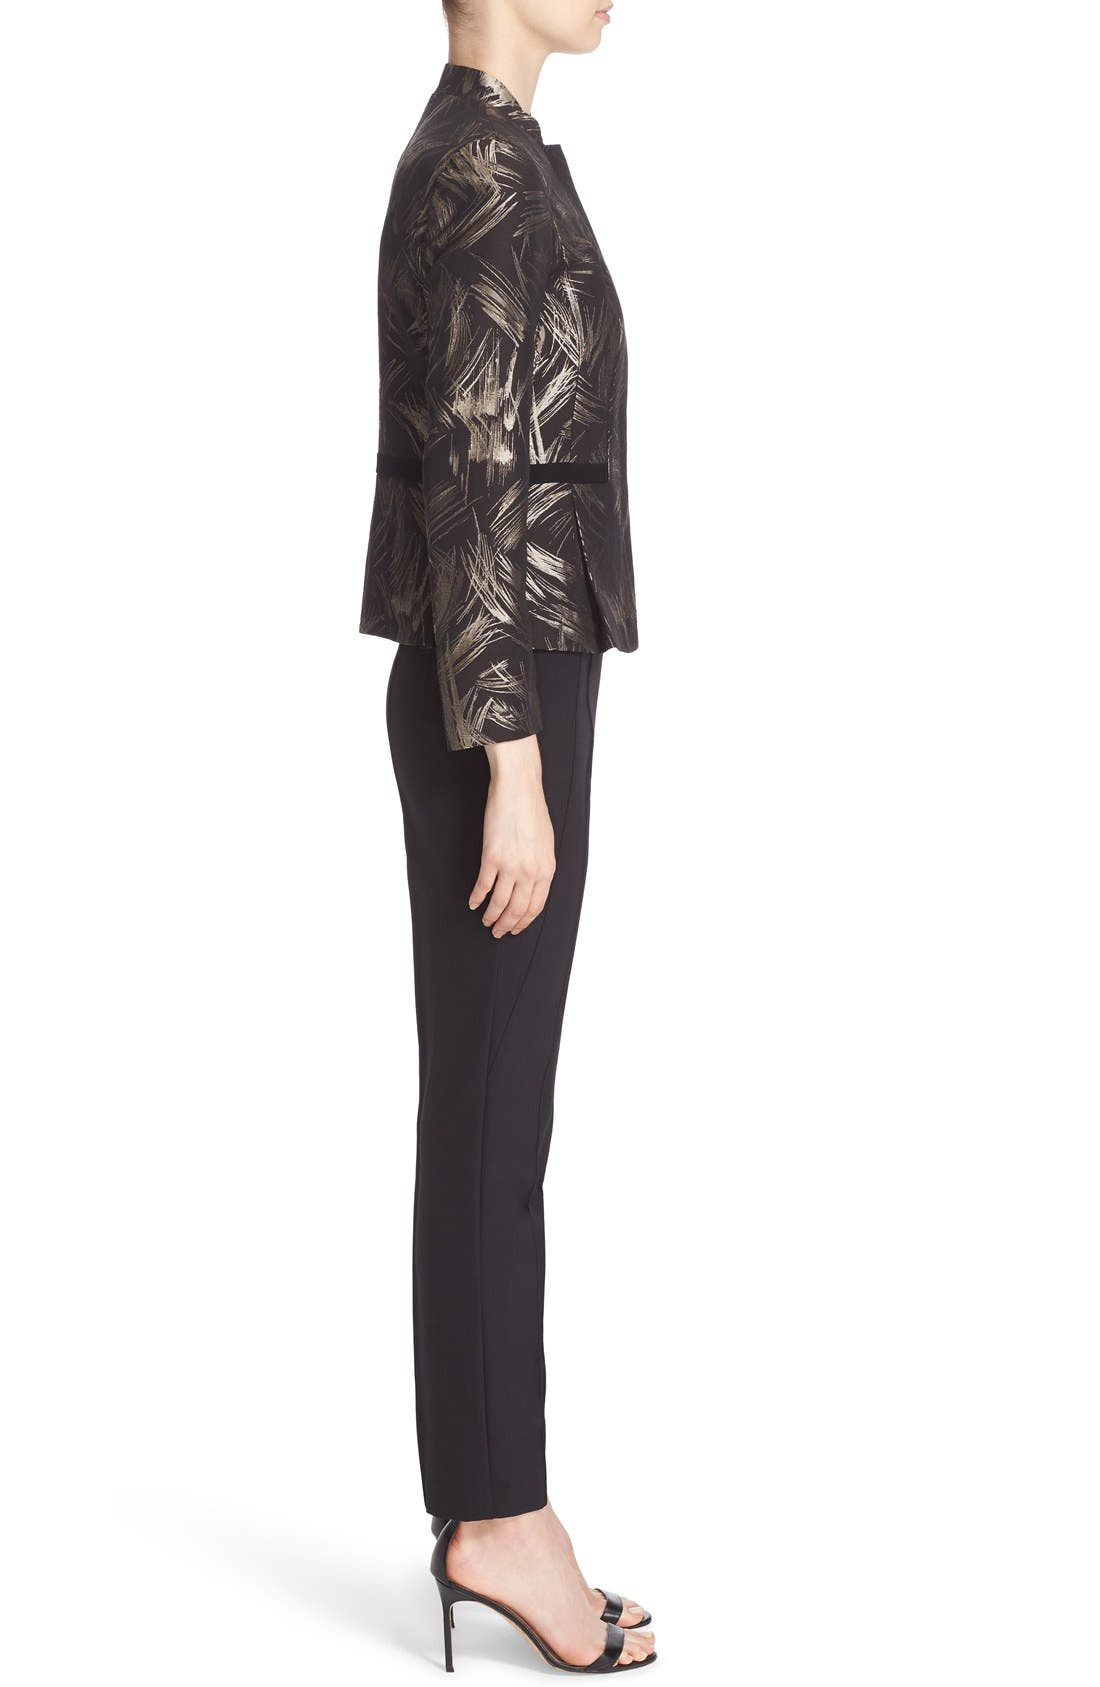 LAFAYETTE 148 NEW YORK, 'Gramercy' Acclaimed Stretch Pants, Alternate thumbnail 8, color, BLACK